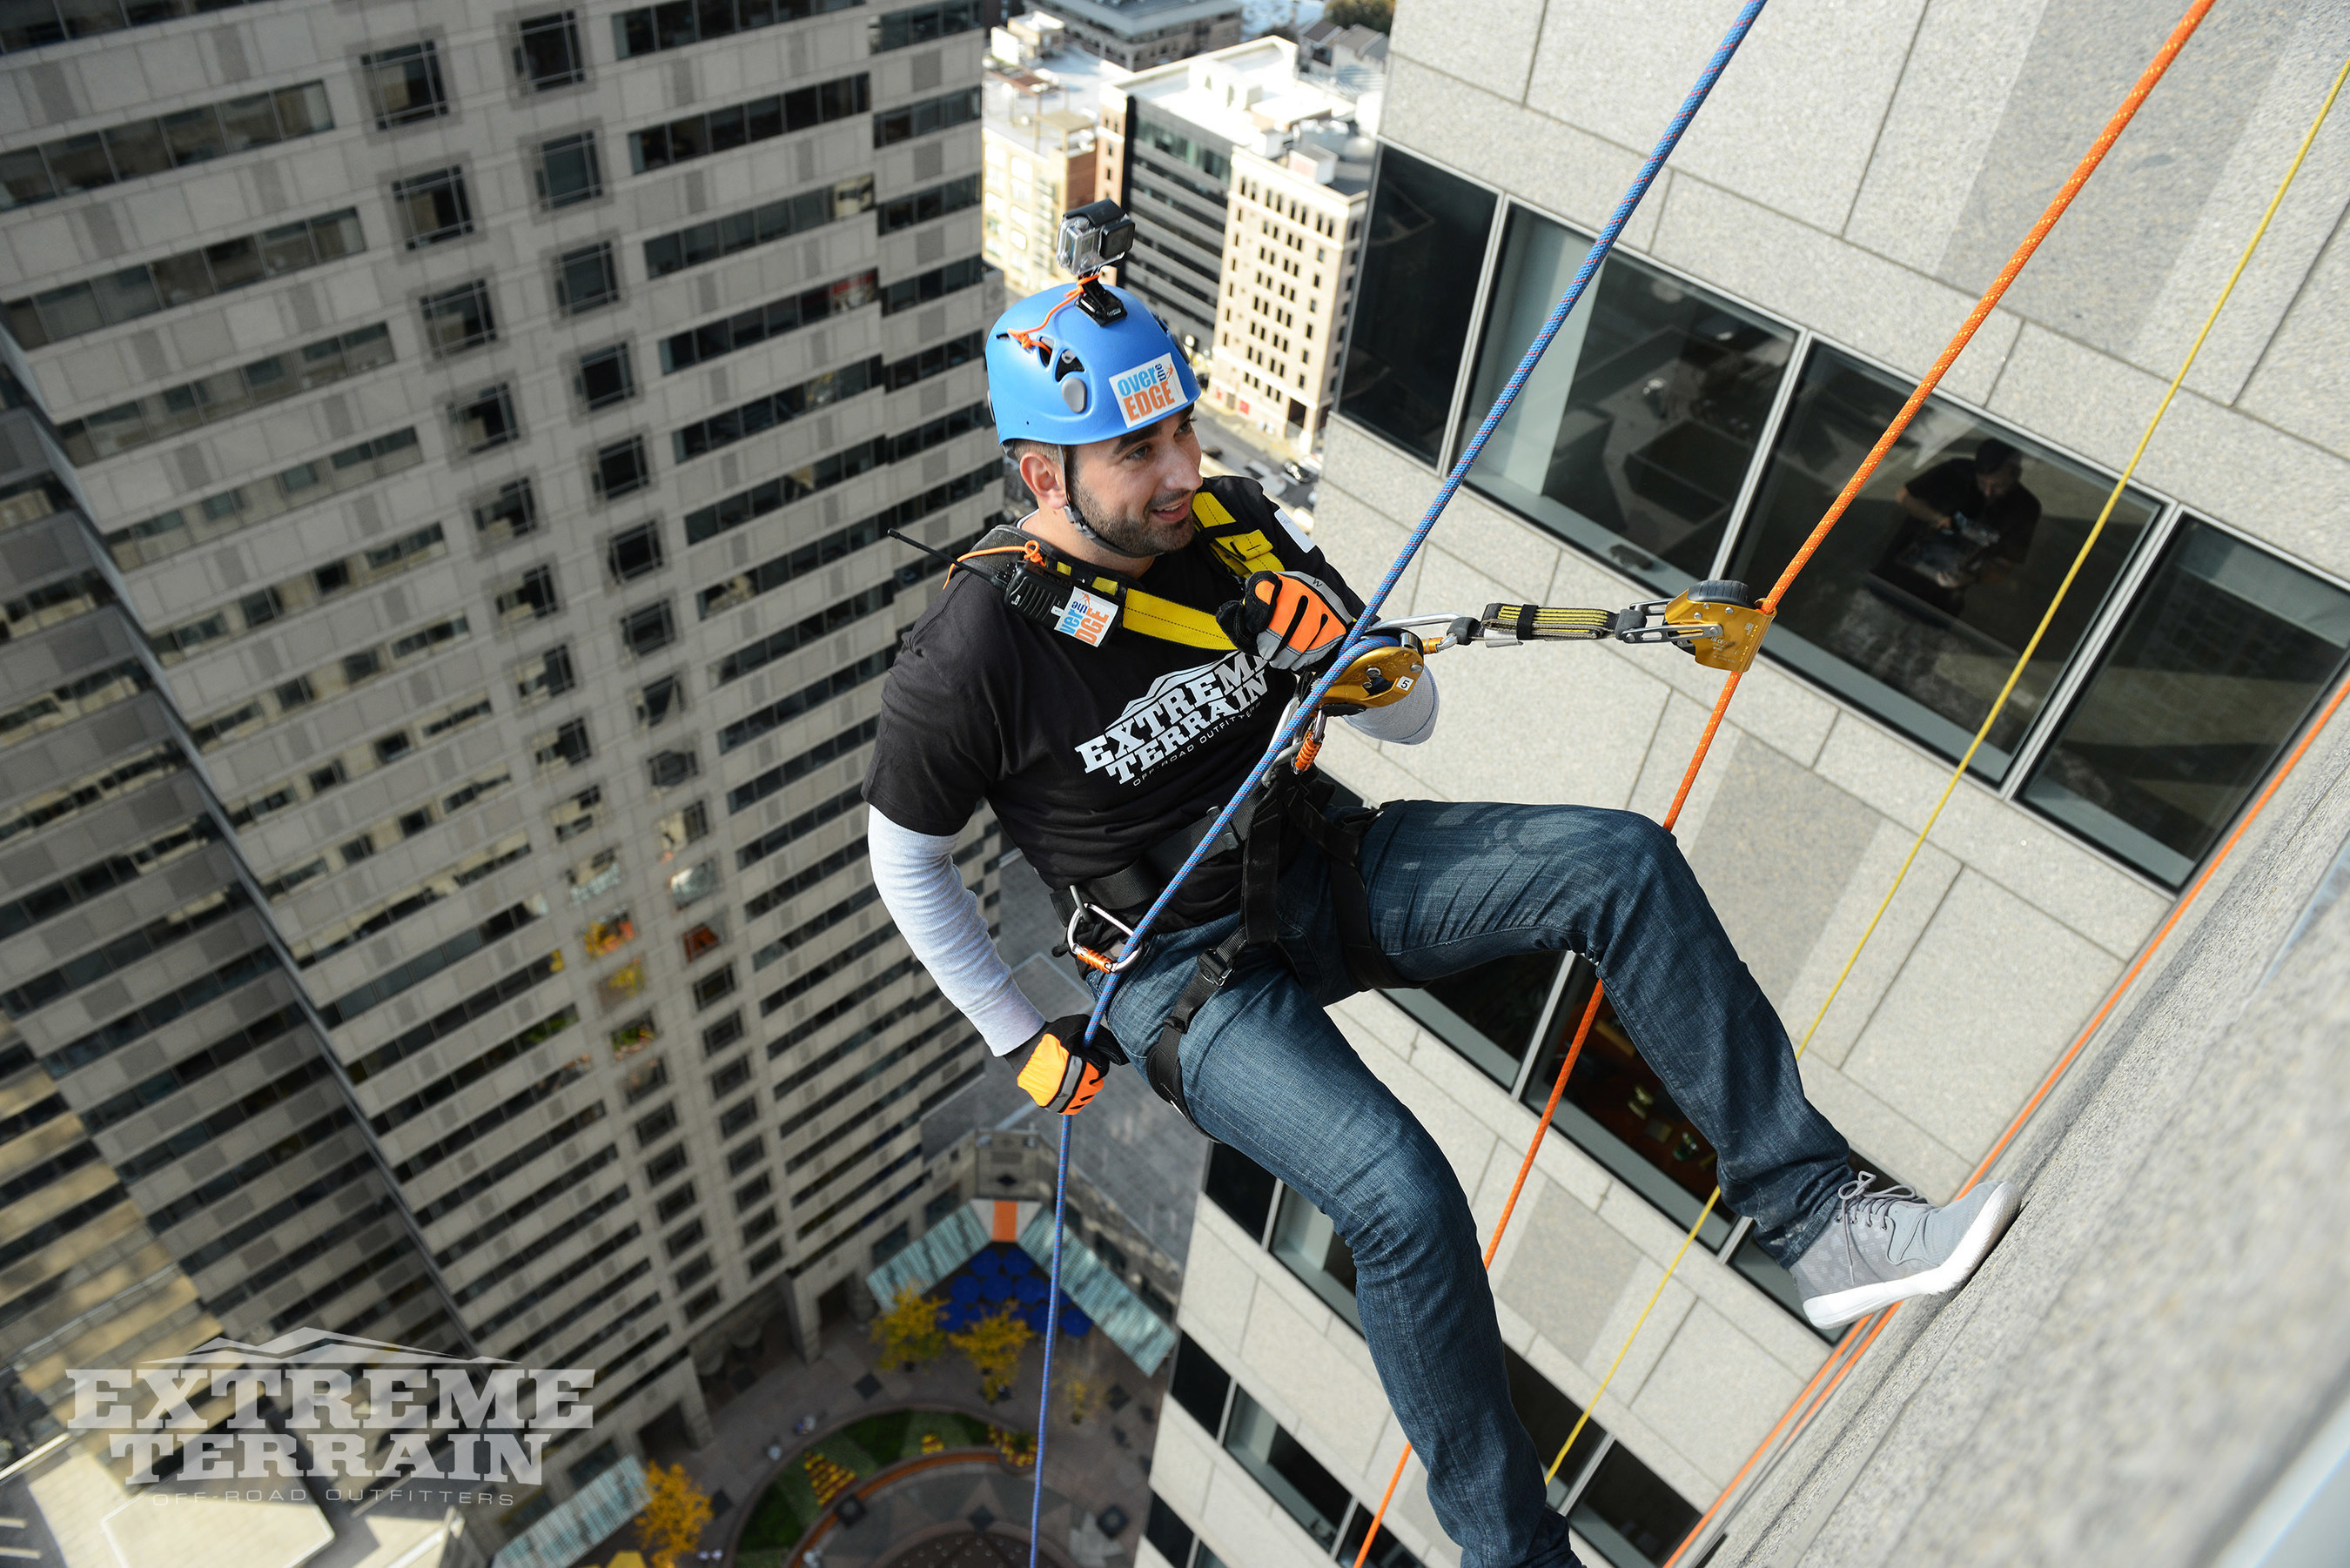 ExtremeTerrain CEO Steve Voudouris rappels down 29 stories above the Philadelphia skyline.